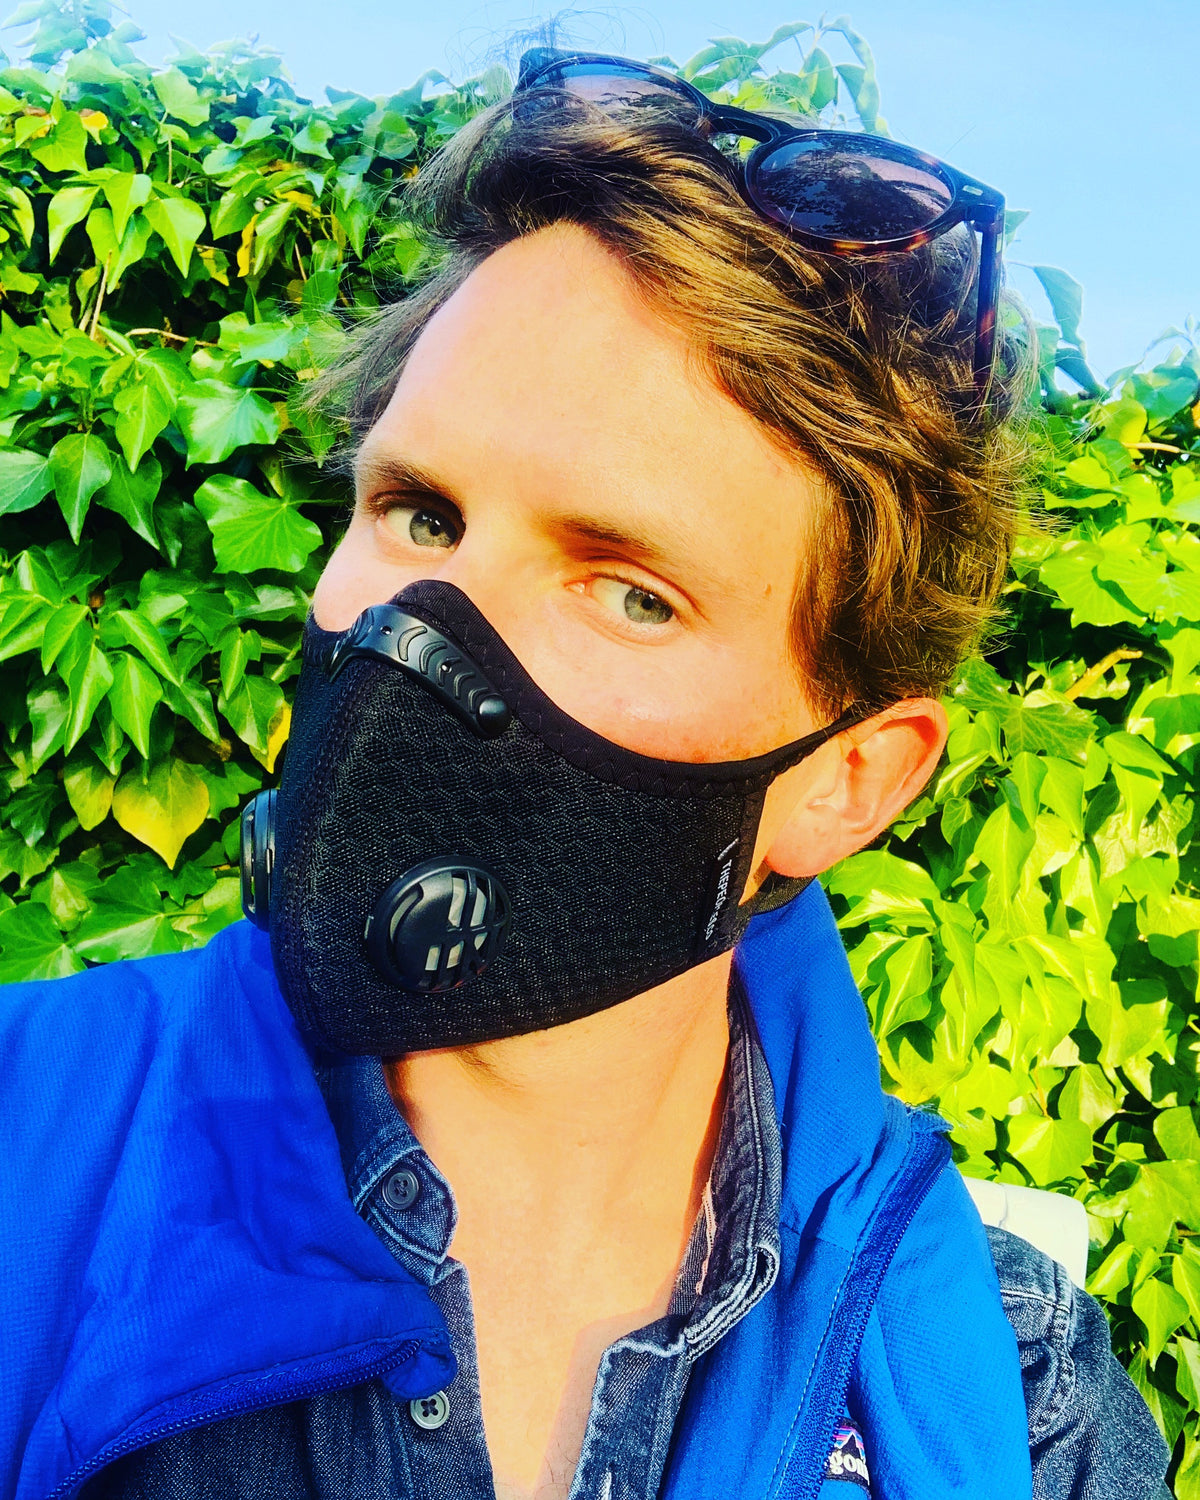 The People's Cycling Mask